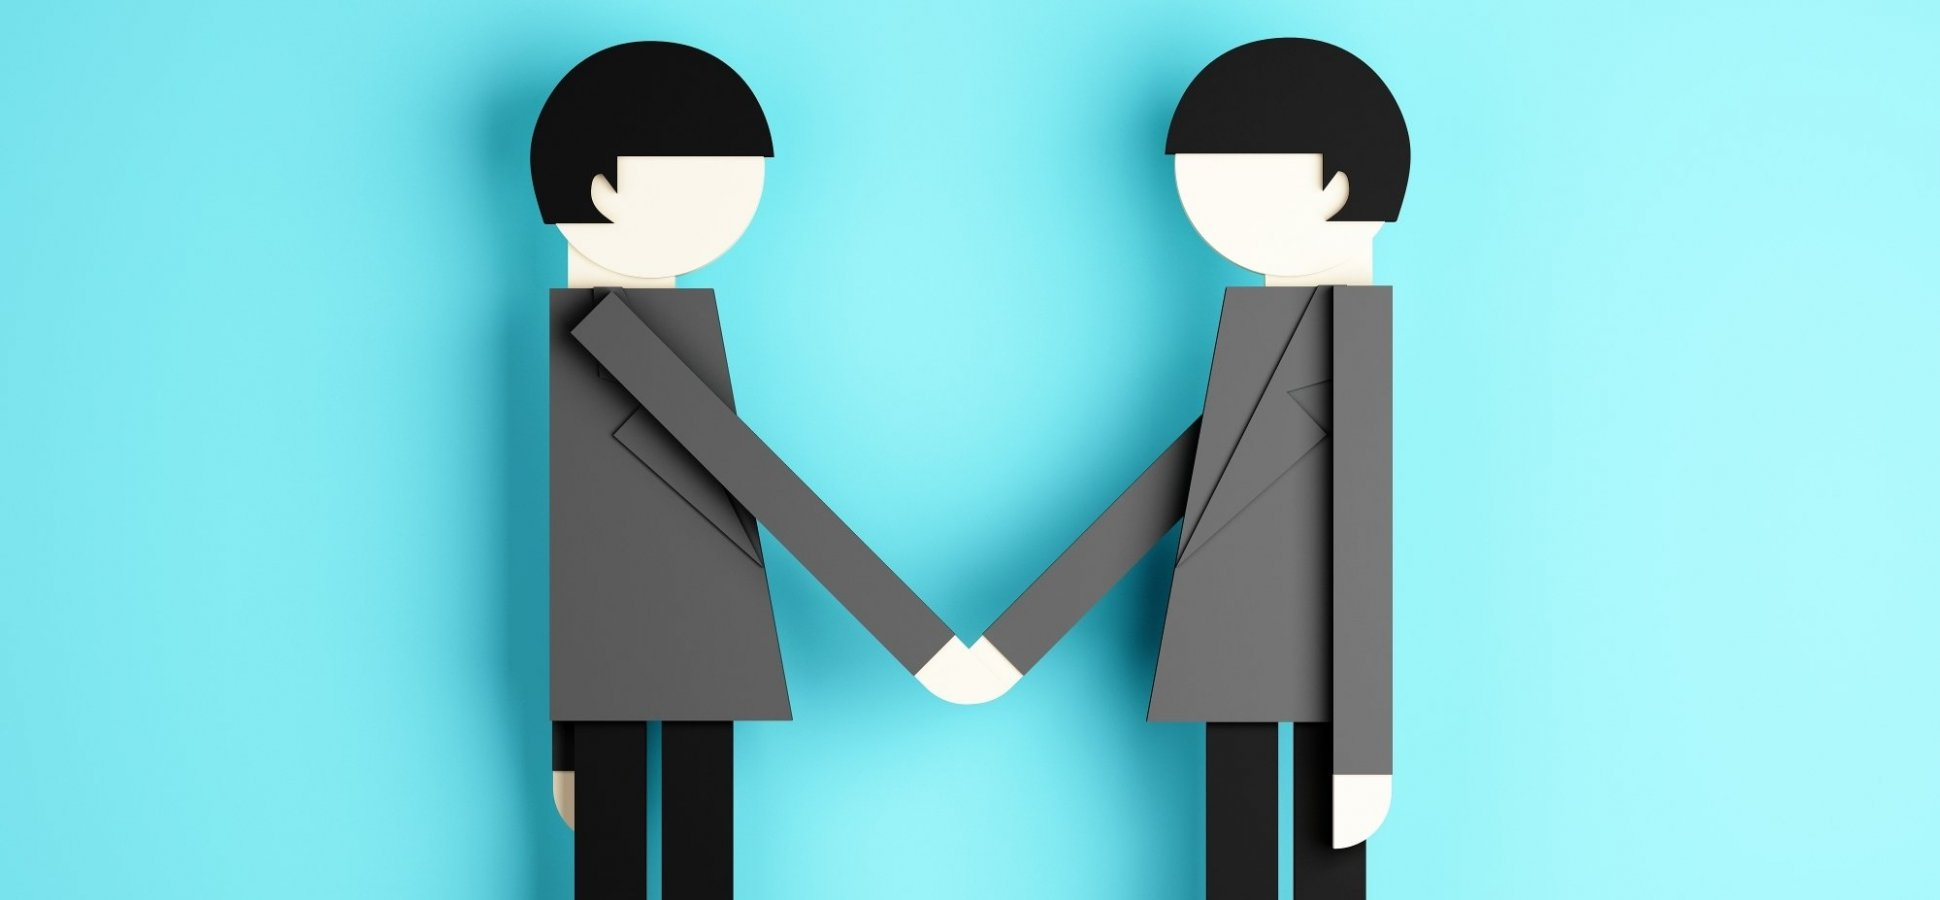 The Very Simple Key to Sales? Talk to Customers the Way They Want to Be Talked To